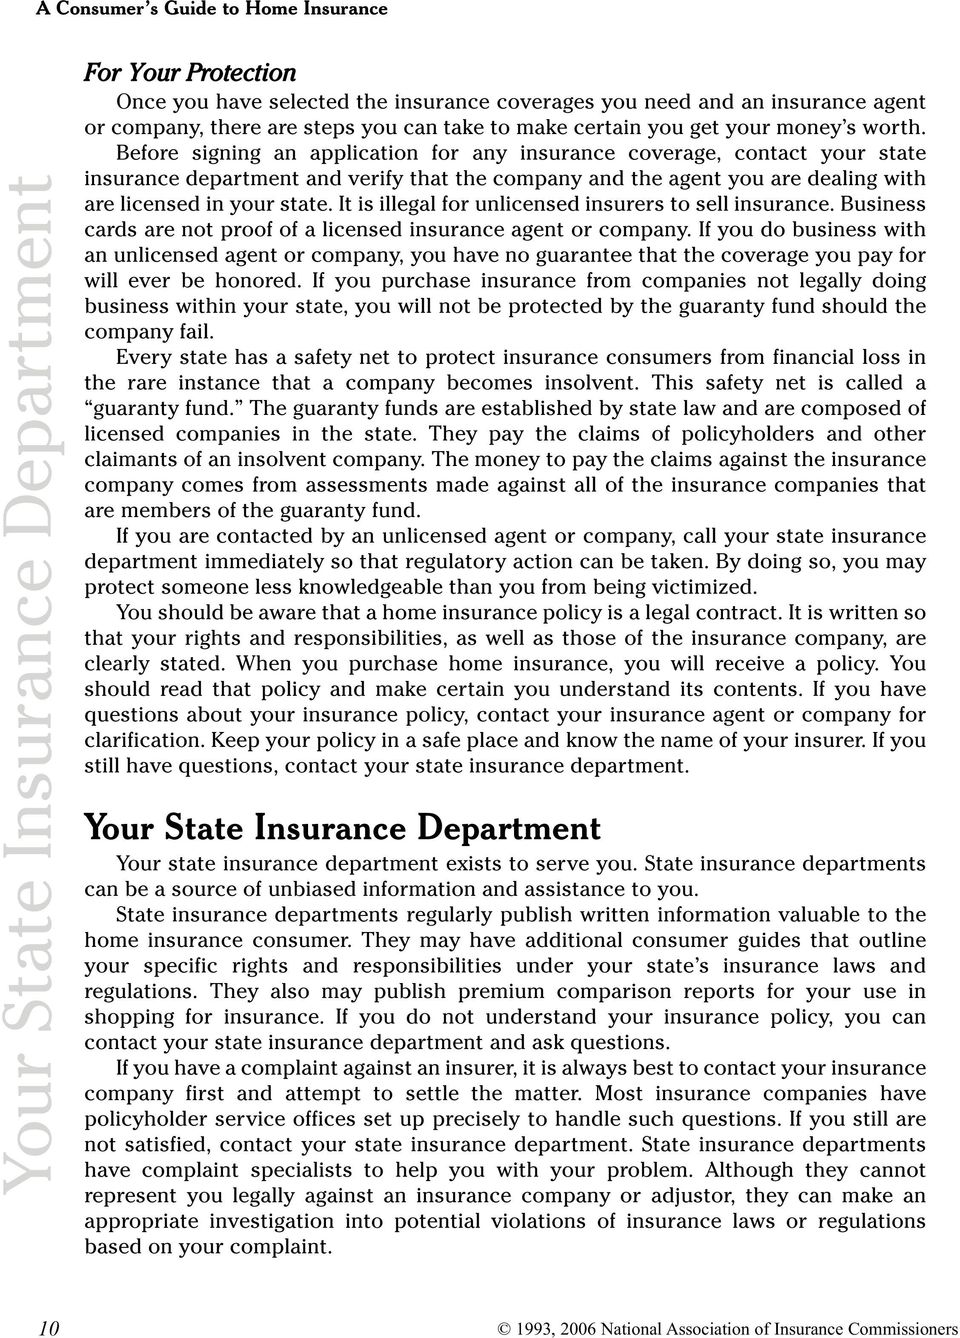 Before signing an application for any insurance coverage, contact your state insurance department and verify that the company and the agent you are dealing with are licensed in your state.